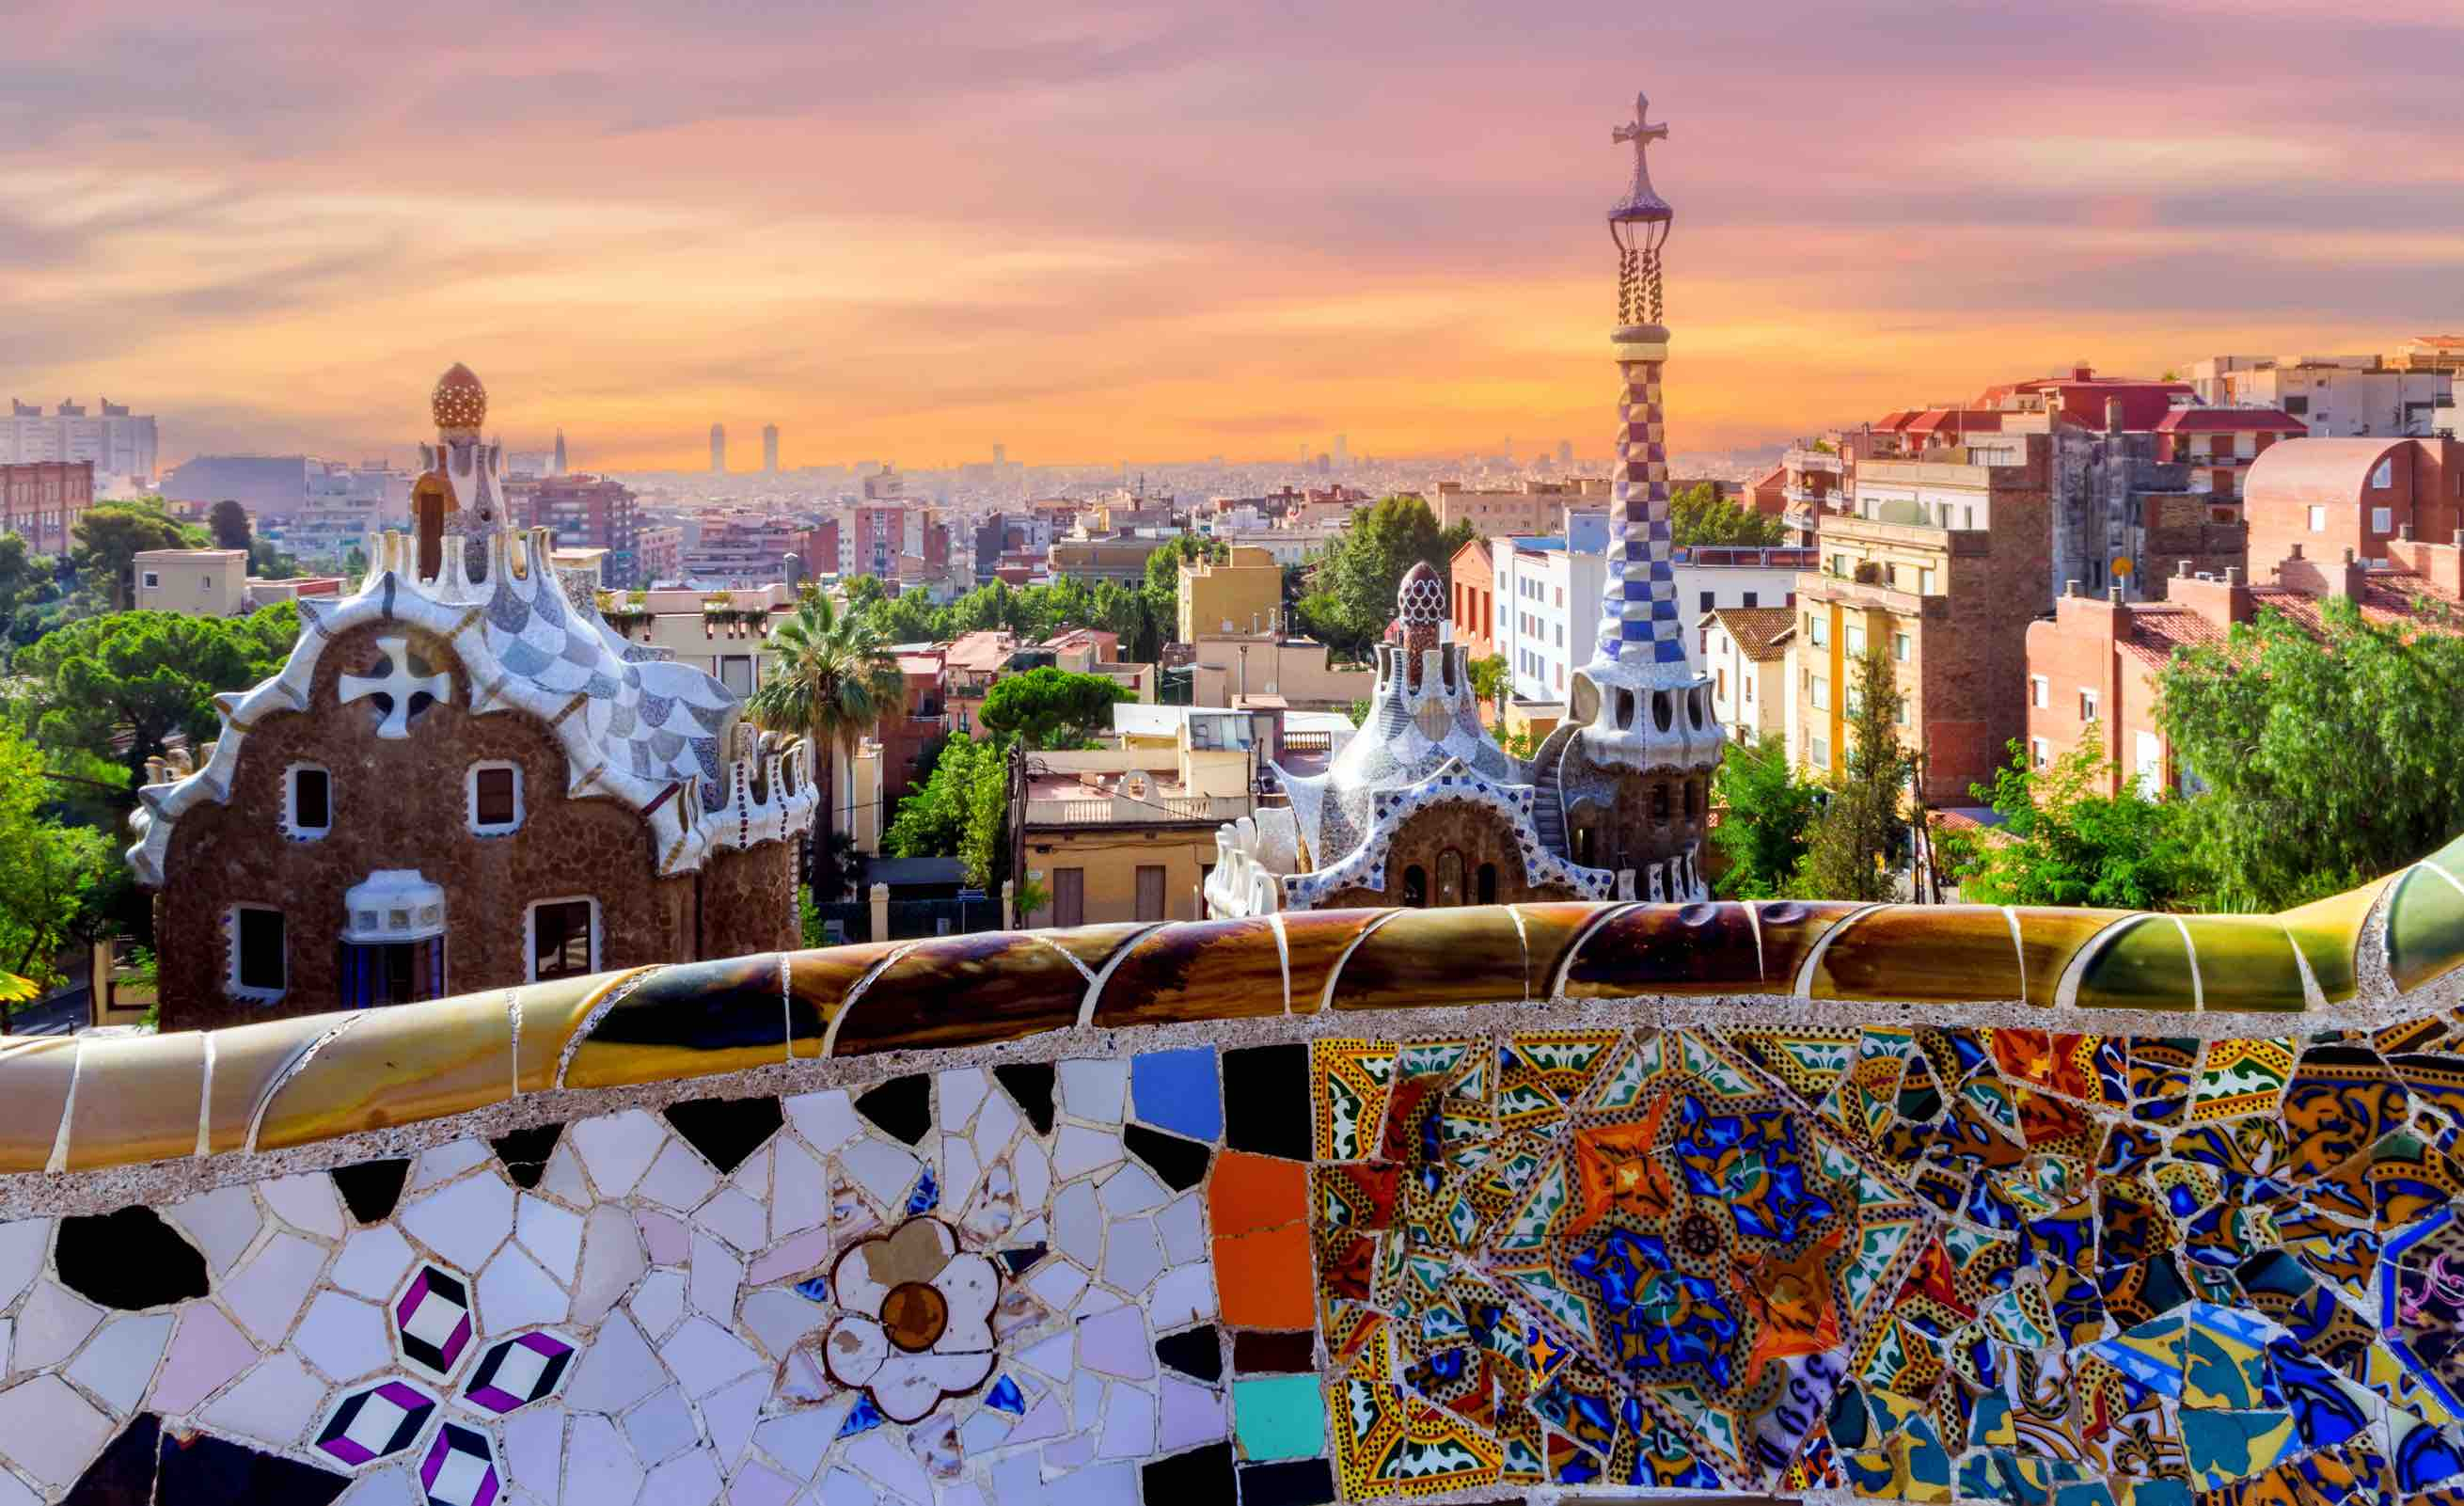 OMG Deals: USA To Barcelona Flights From $207 Round Trip...